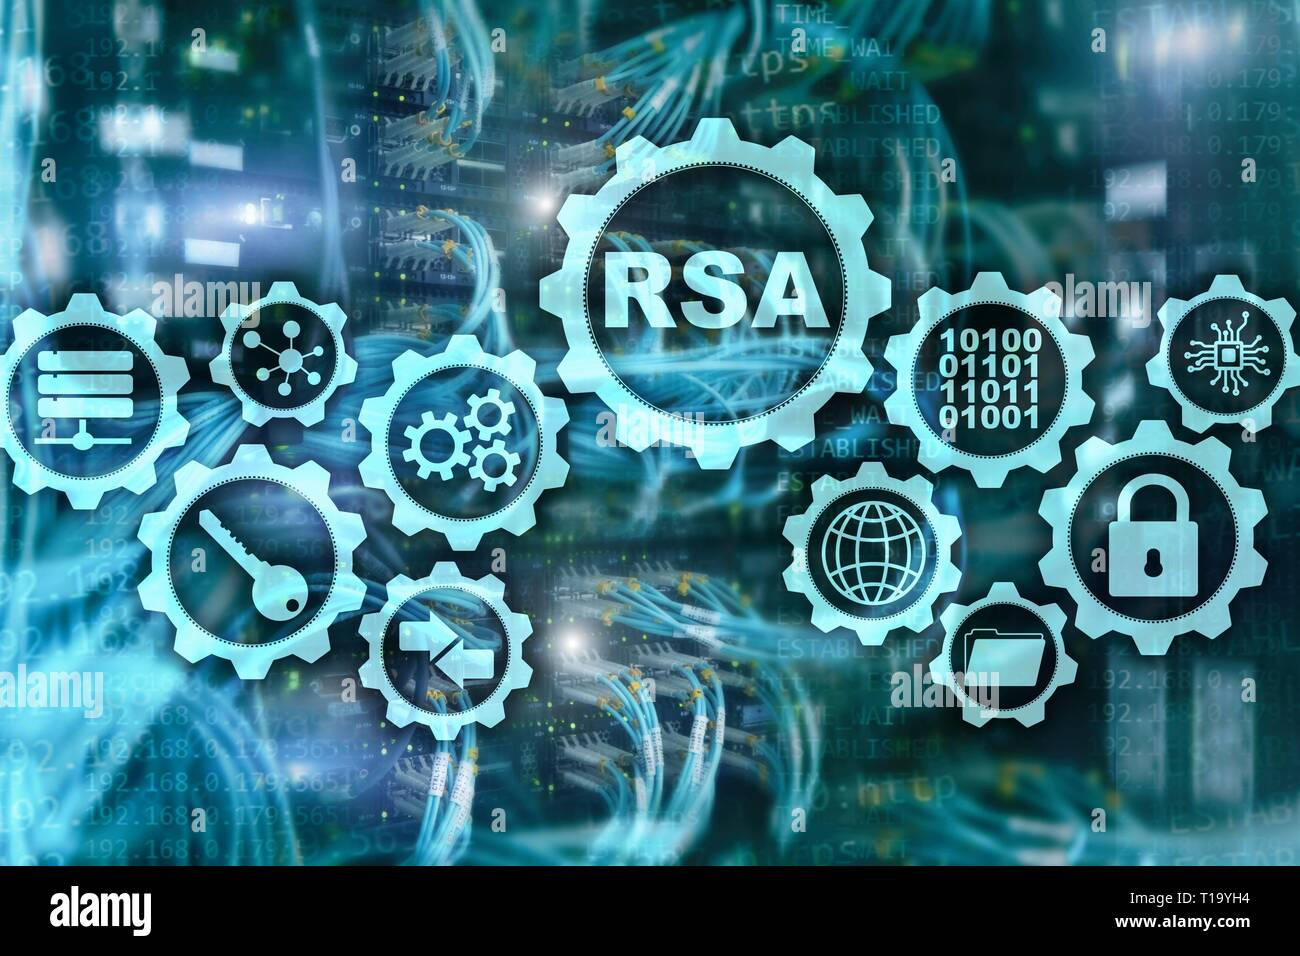 RSA. Rivest Shamir Adleman cryptosystem. Cryptography and Network Security - Stock Image